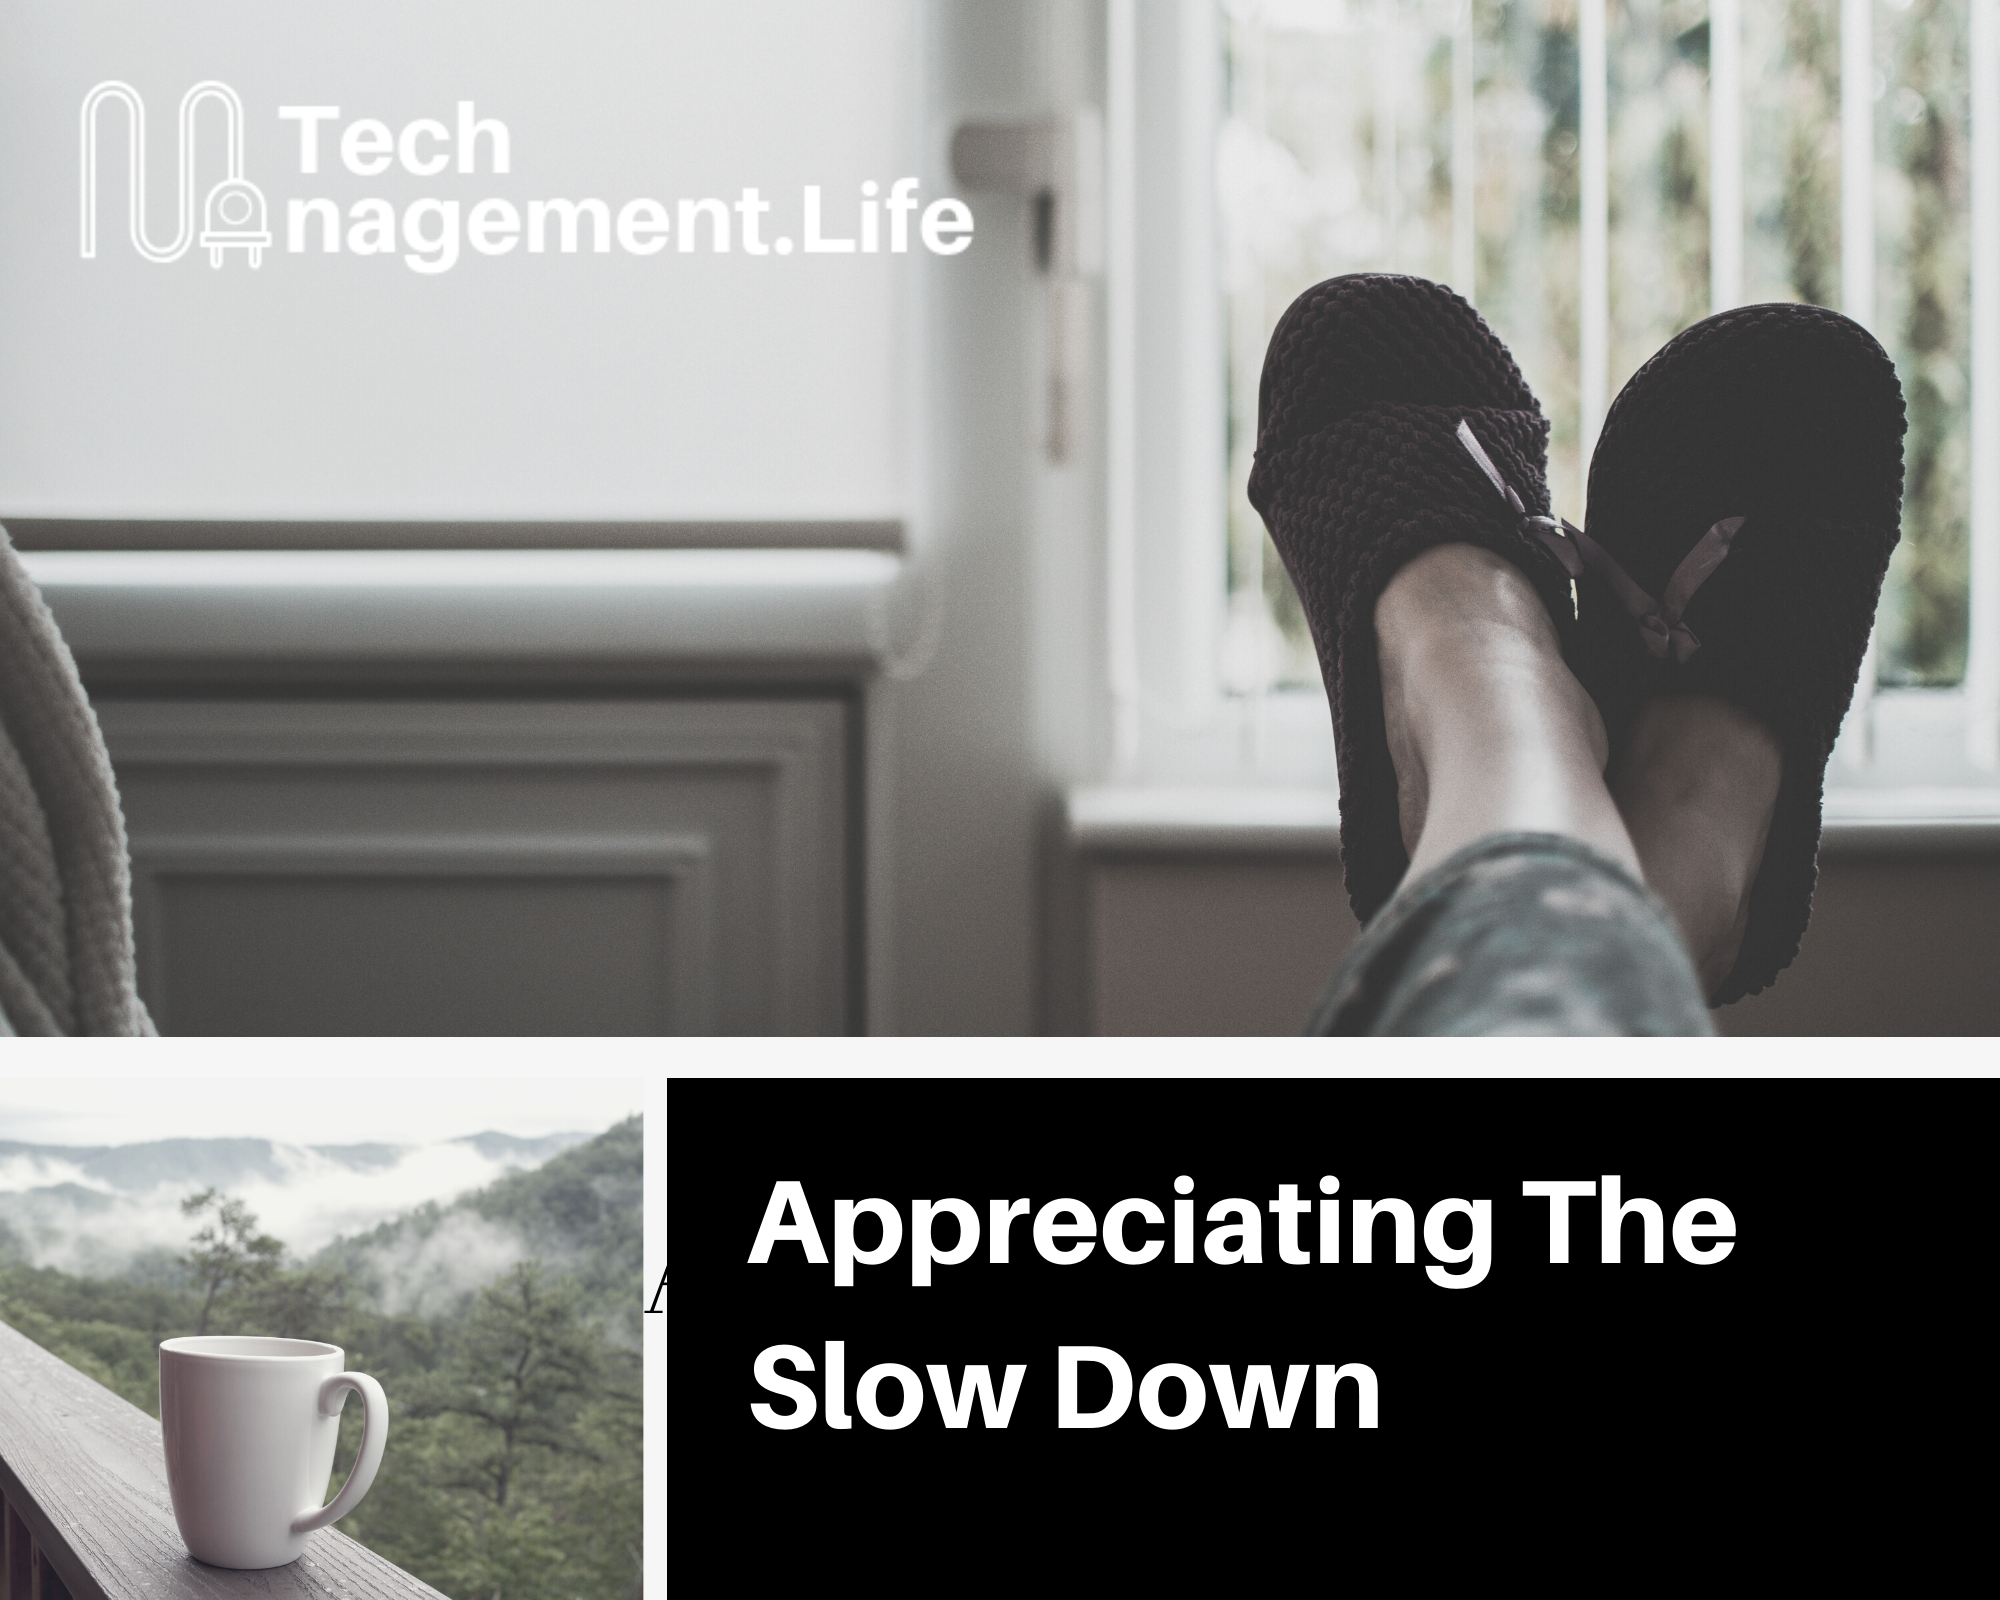 Appreciating The Slow Down - TechManagement.Life